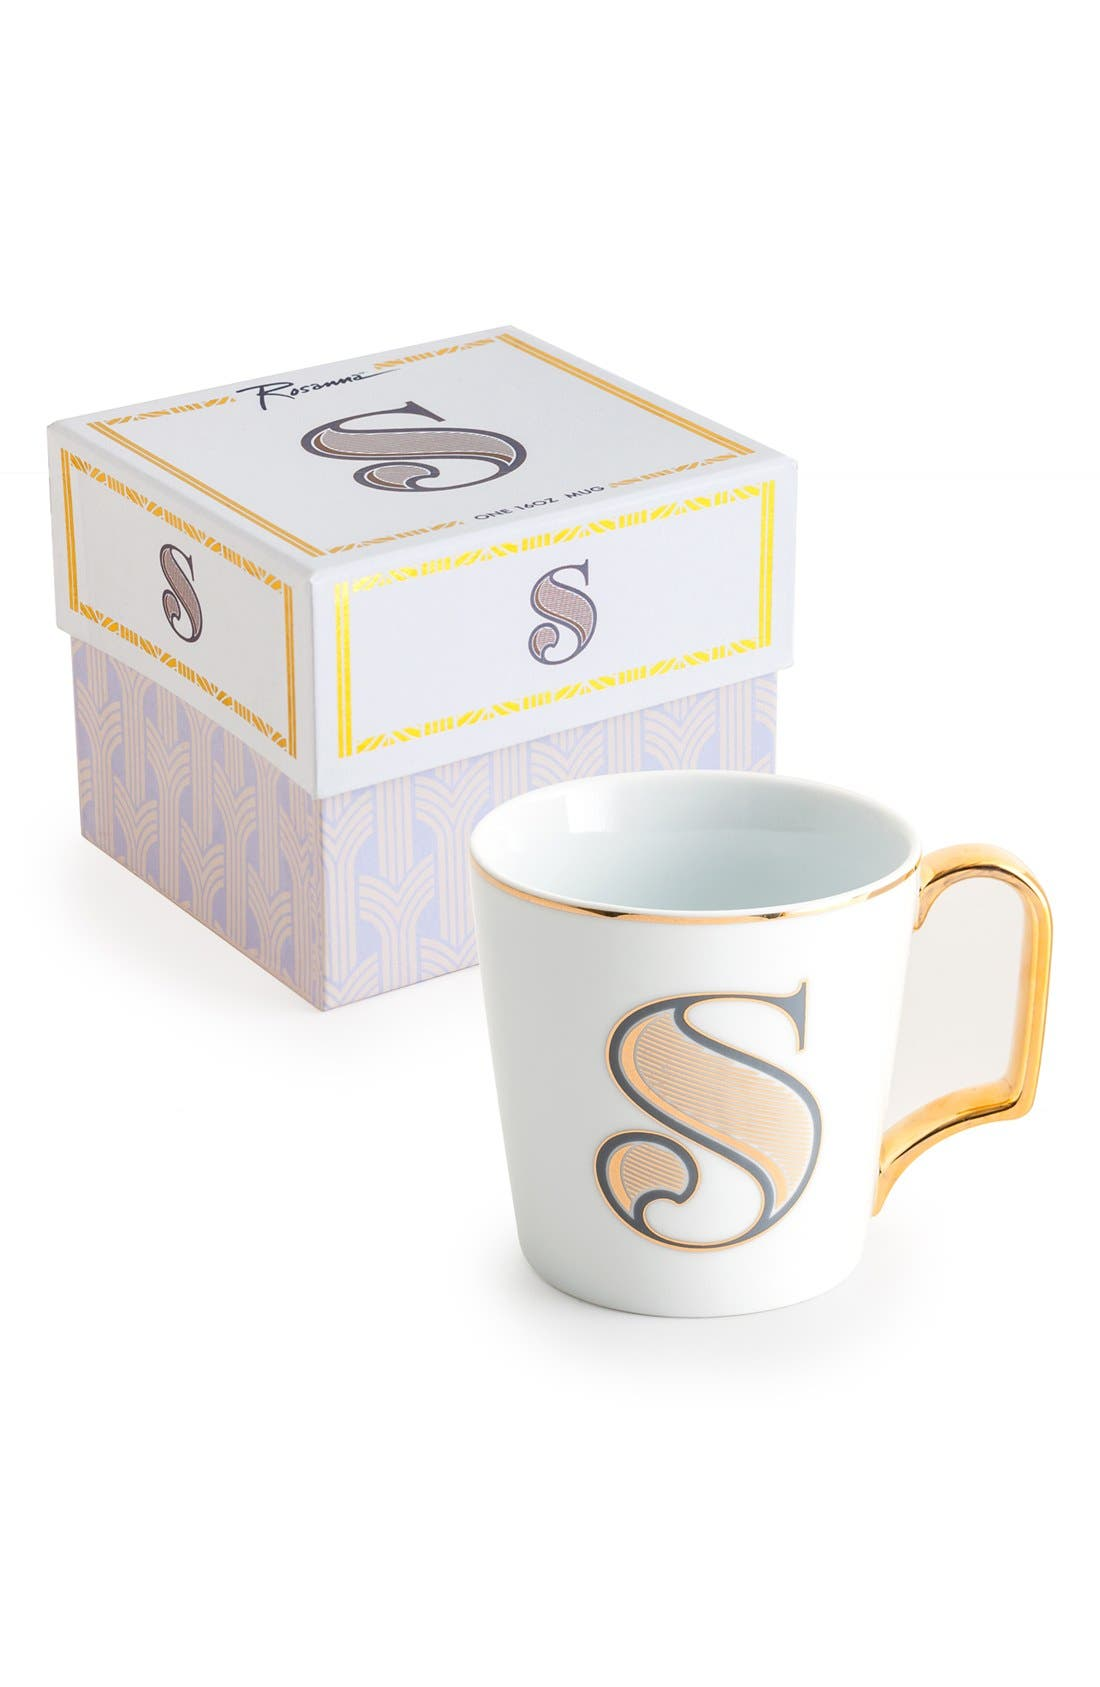 Monogram Porcelain Coffee Mug,                             Main thumbnail 15, color,